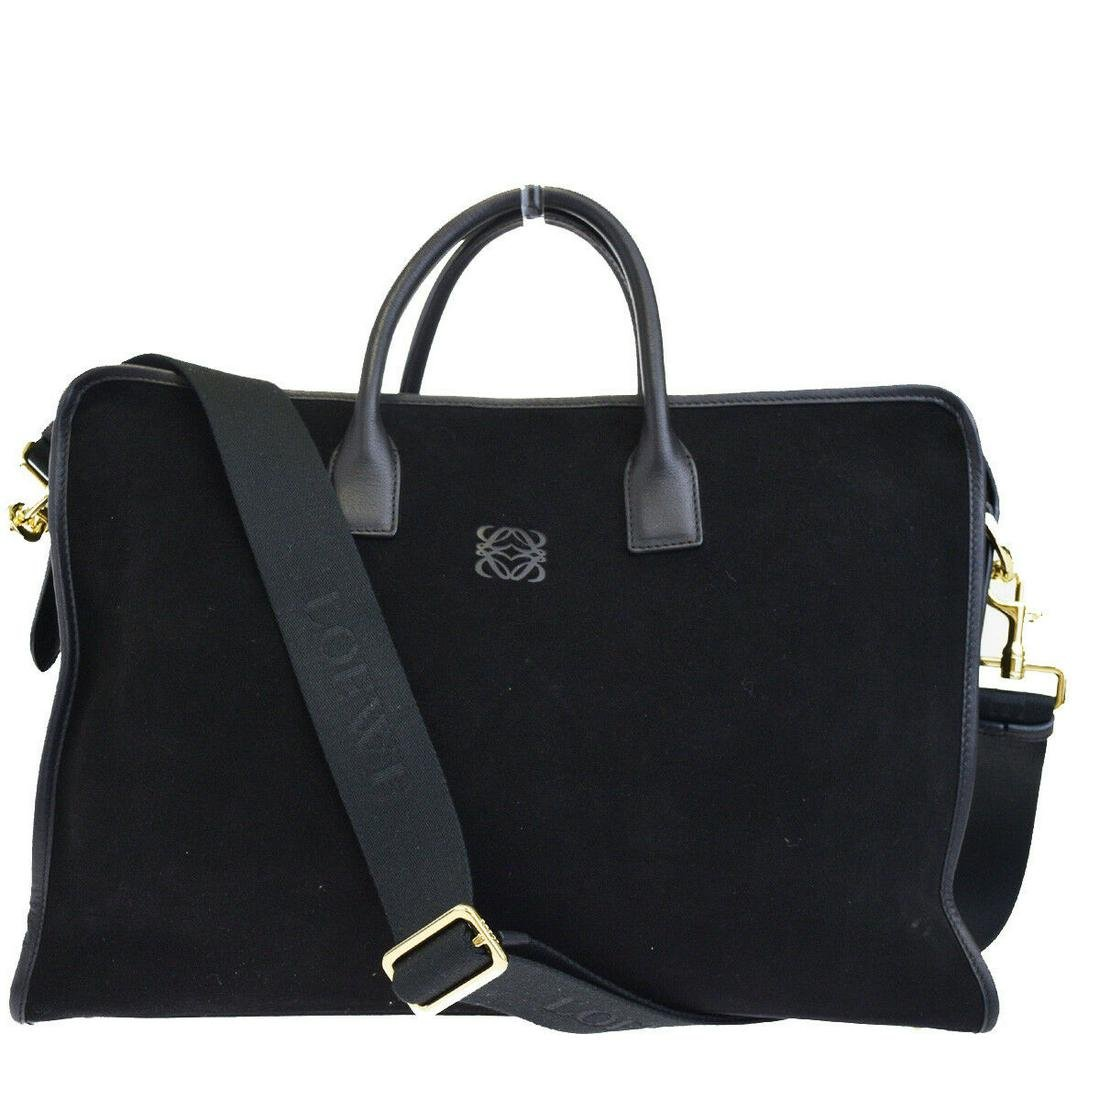 Authentic LOEWE Leather, Suede Shoulder Hand Bag